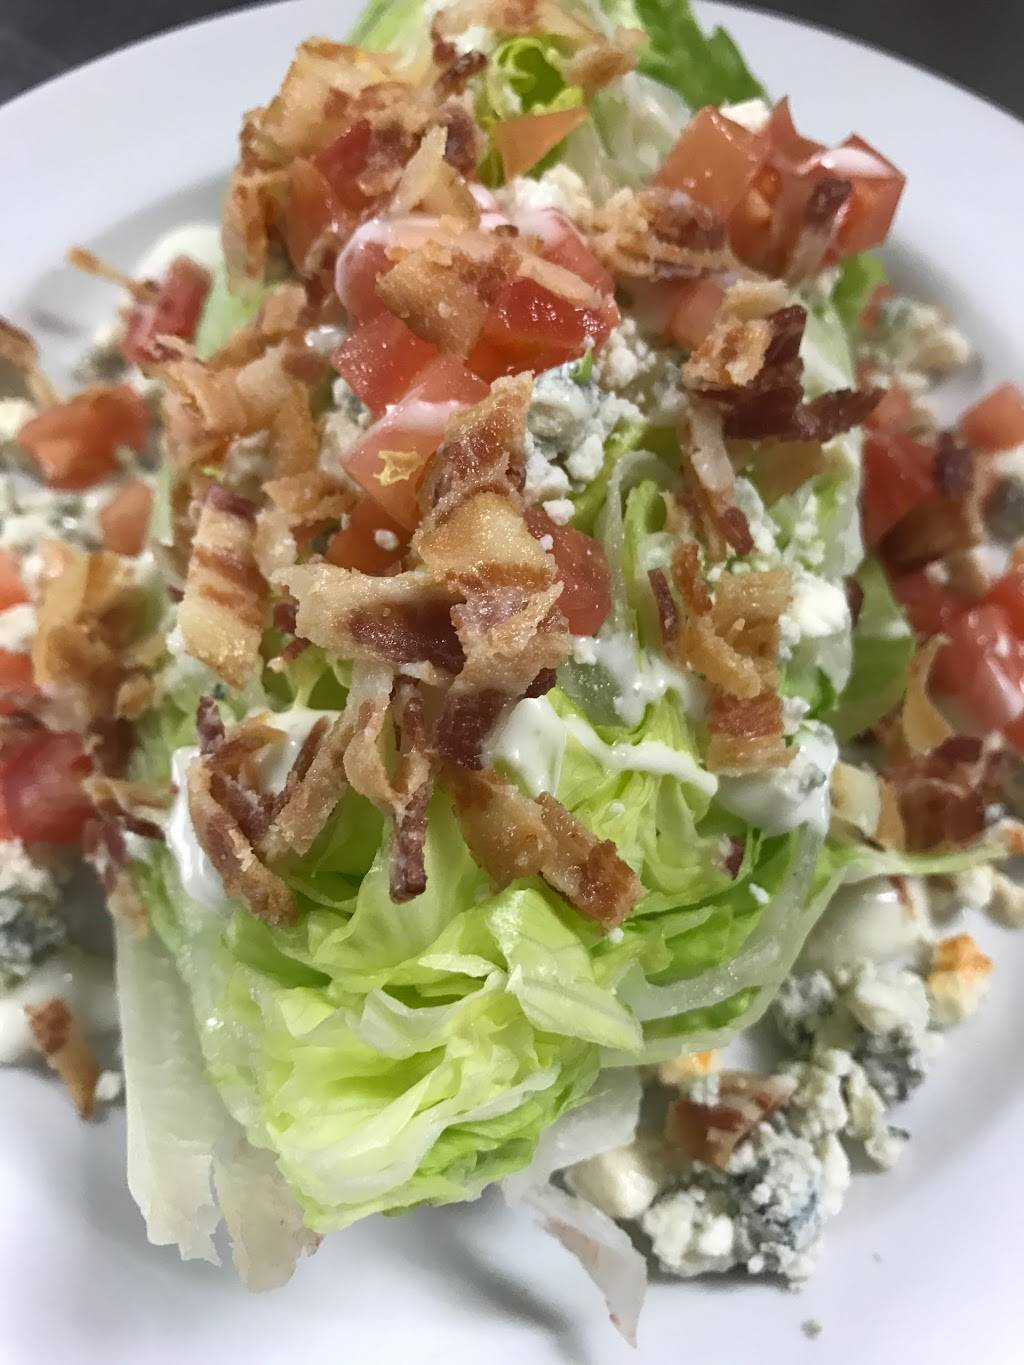 The Breakroom Bar & Grill   restaurant   13575 58th St N, Clearwater, FL 33760, USA   7275384273 OR +1 727-538-4273